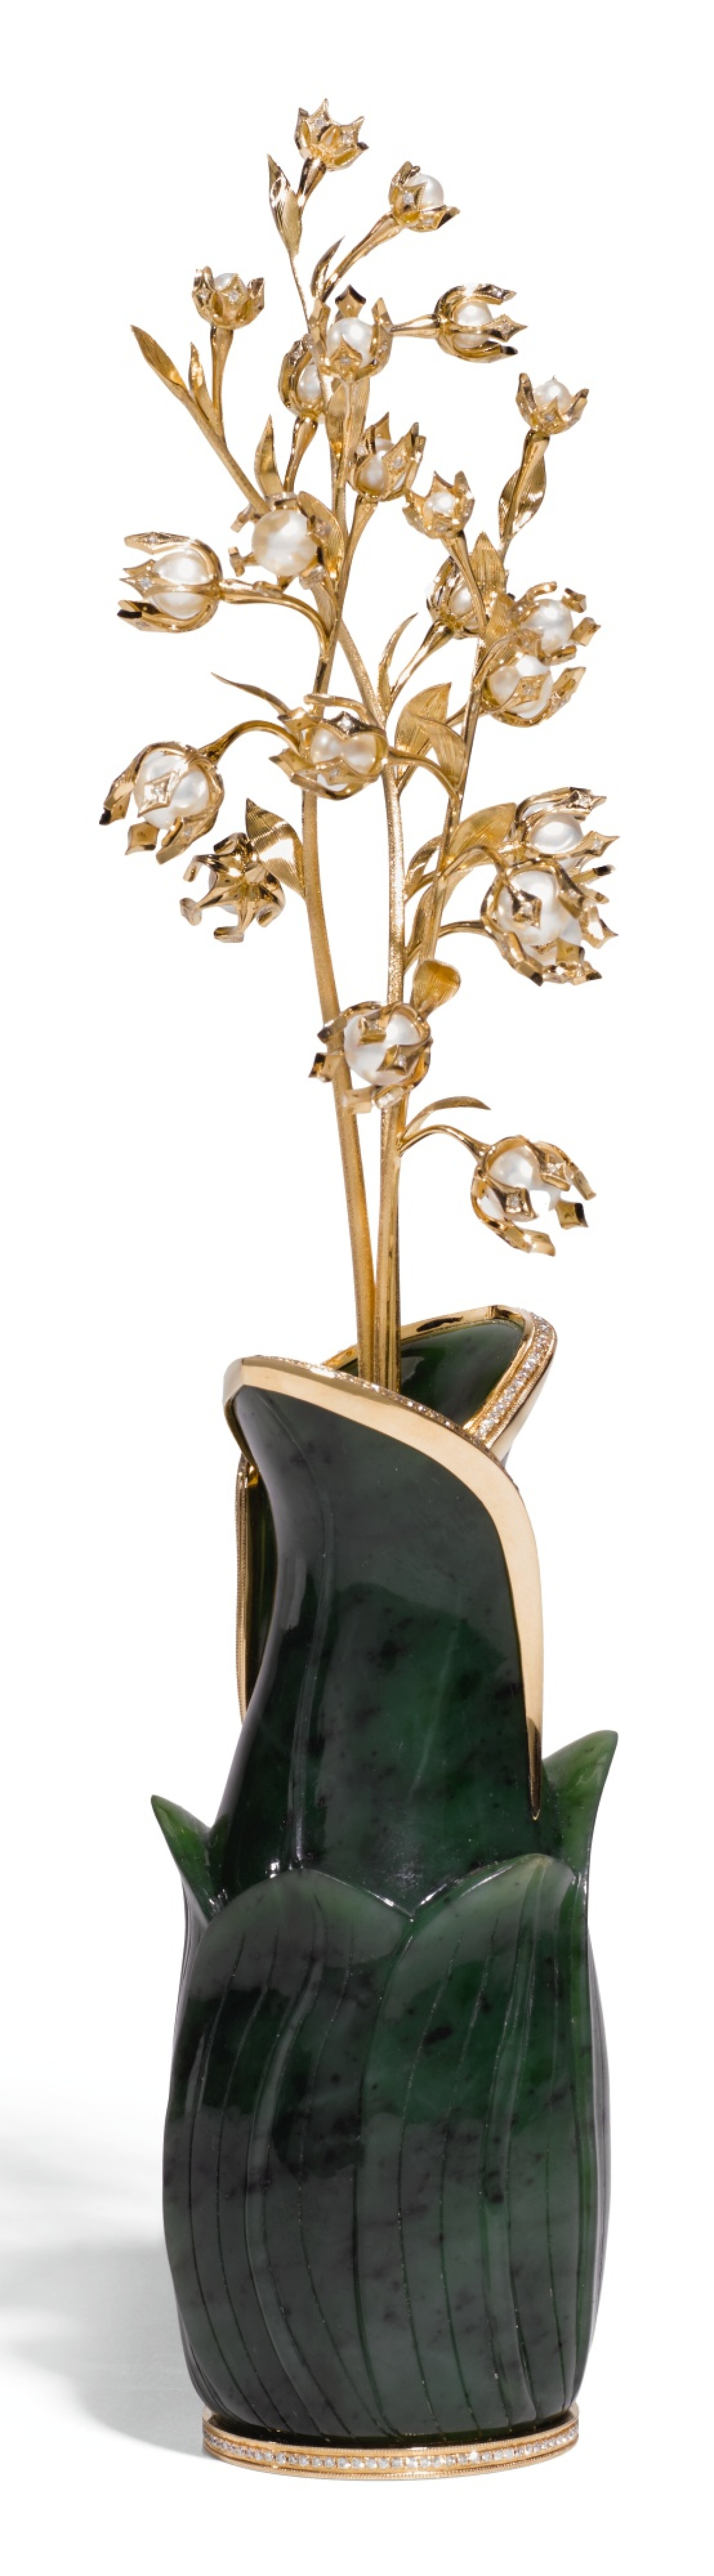 View full screen - View 1 of Lot 88. A MODERN JEWELLED 18 CT GOLD, PEARL AND NEPHRITE STUDY OF A LILY-OF THE-VALLEY.